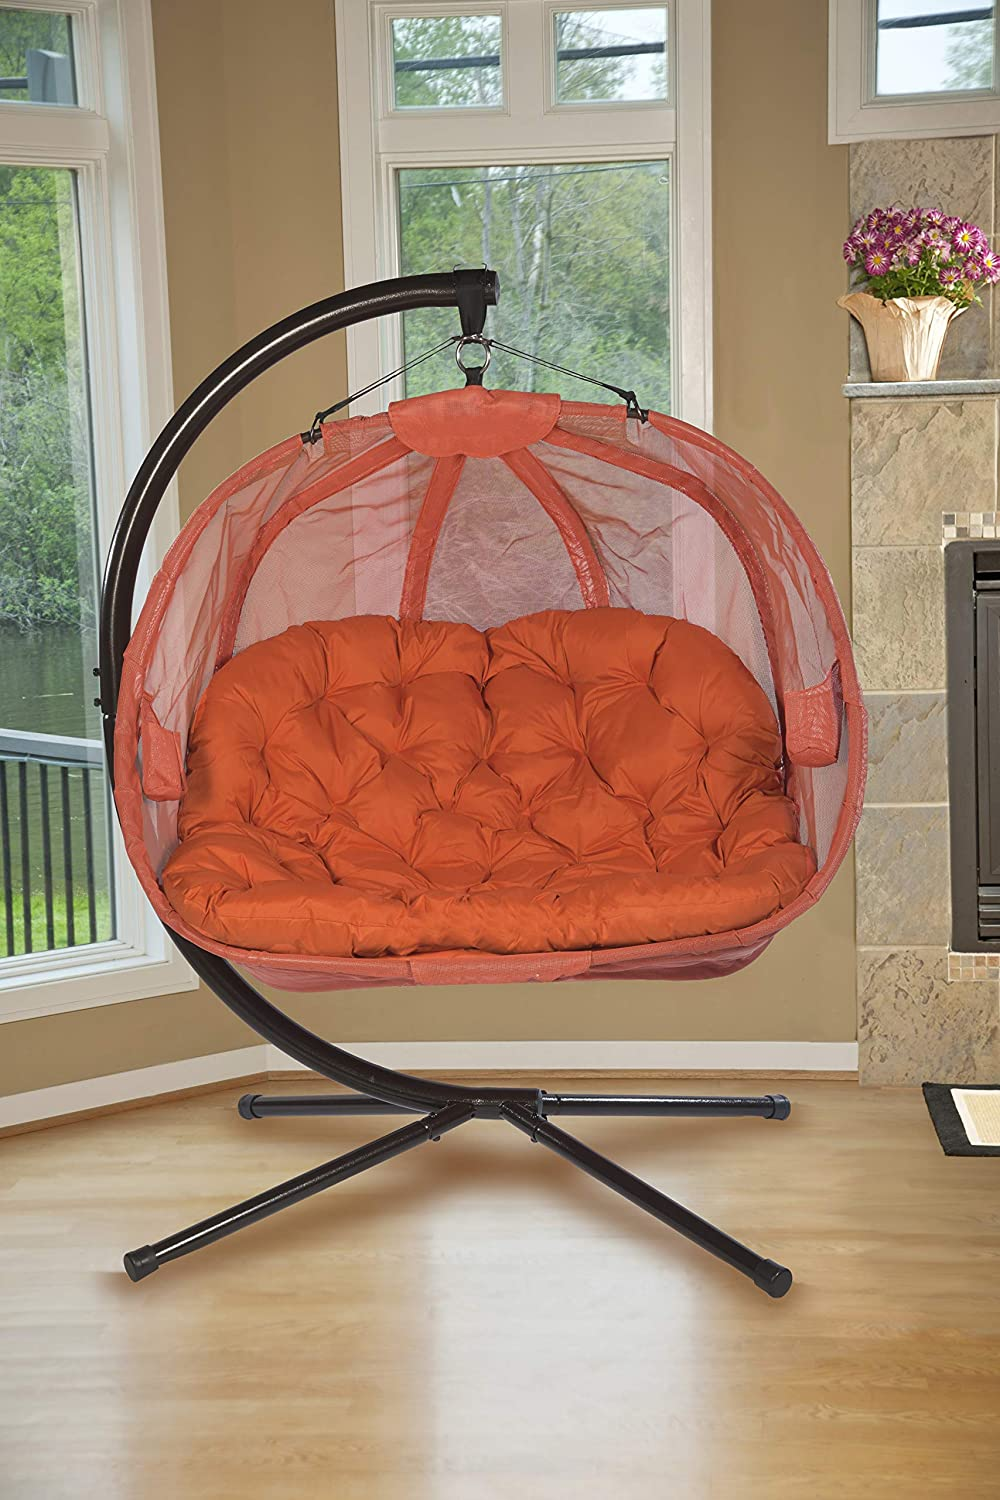 Top 10 hanging chairs for houses and gardens 2020 7